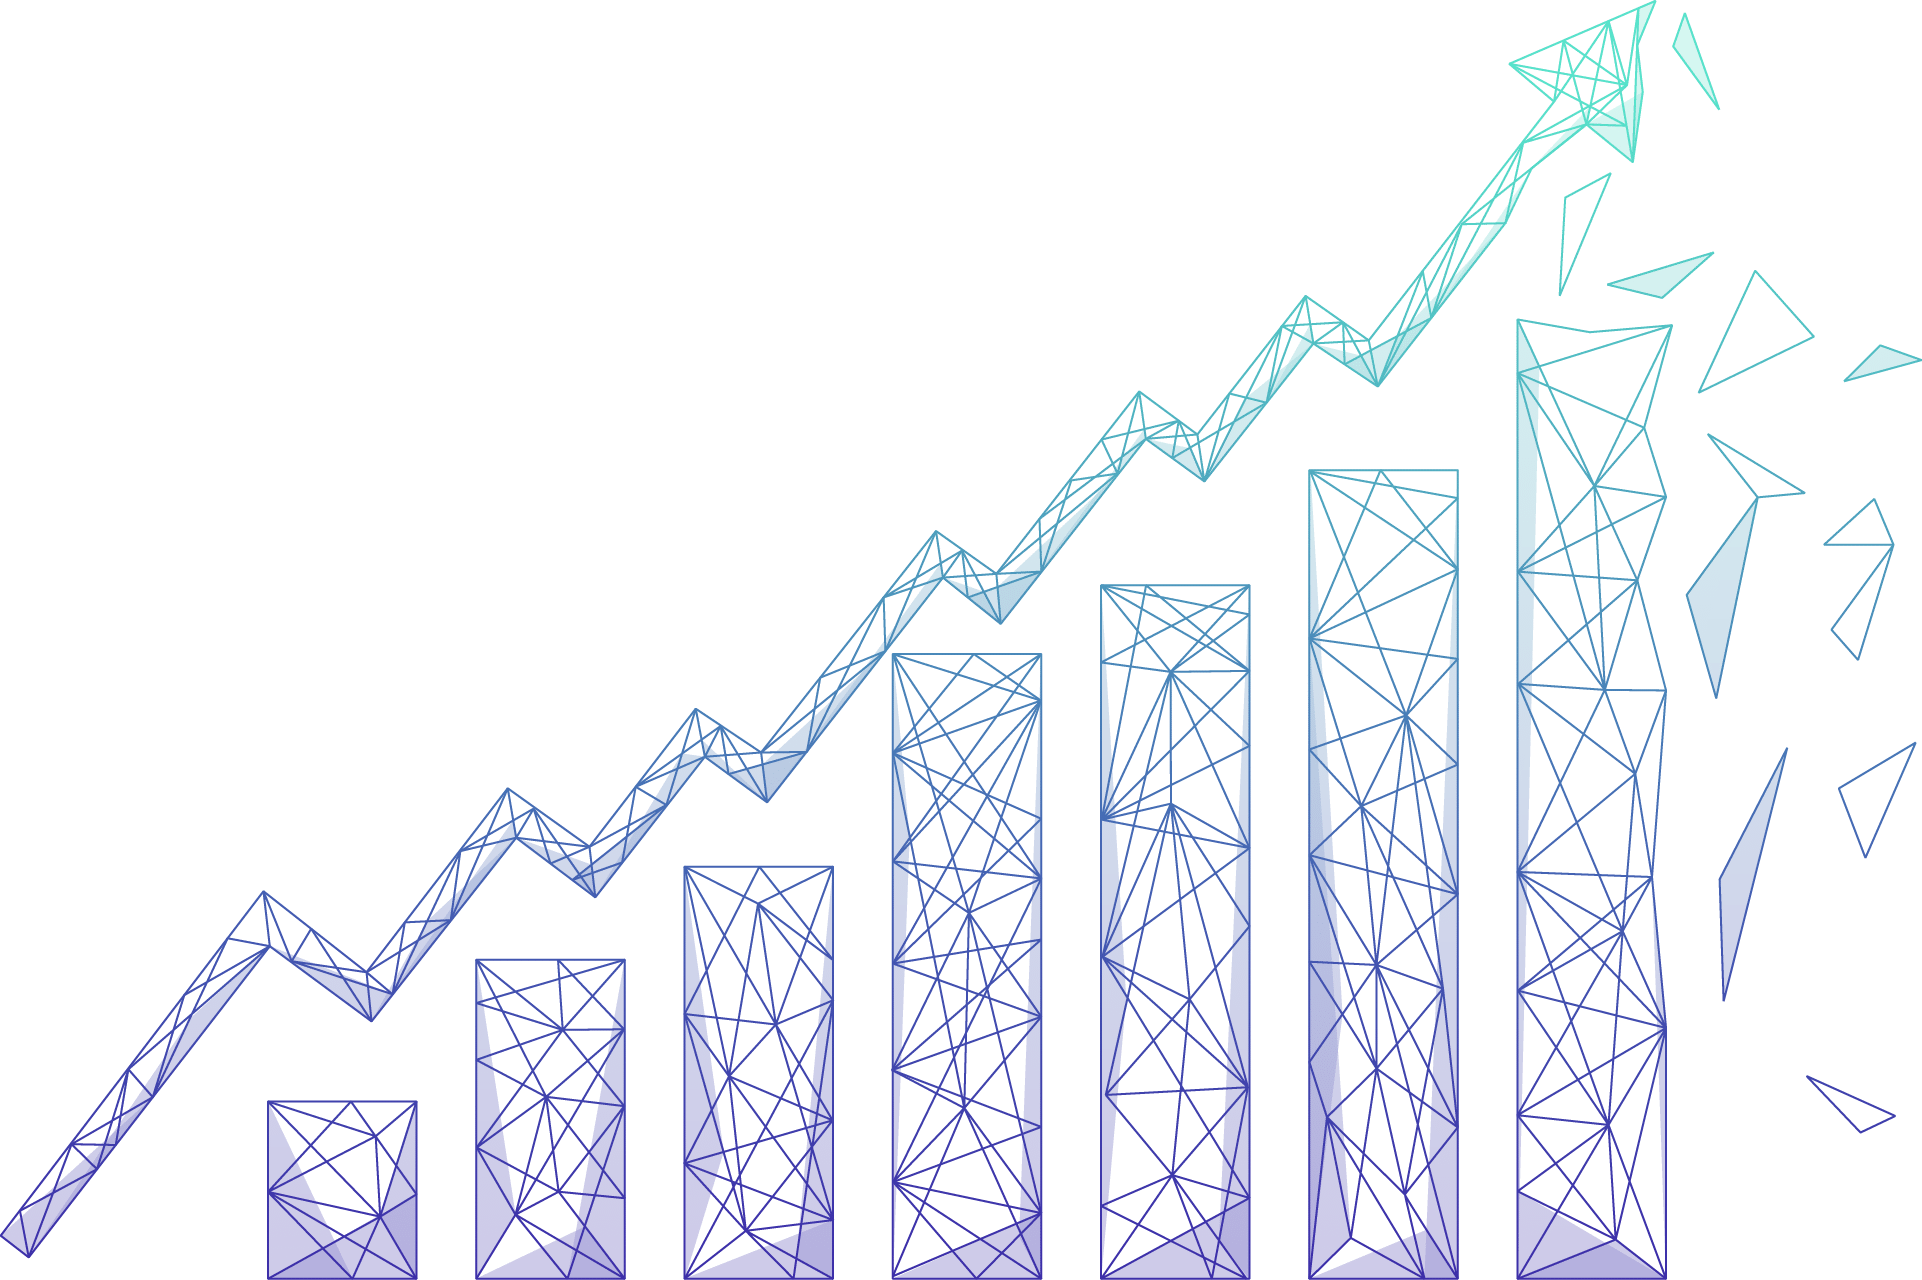 ROI Chart Gradient png